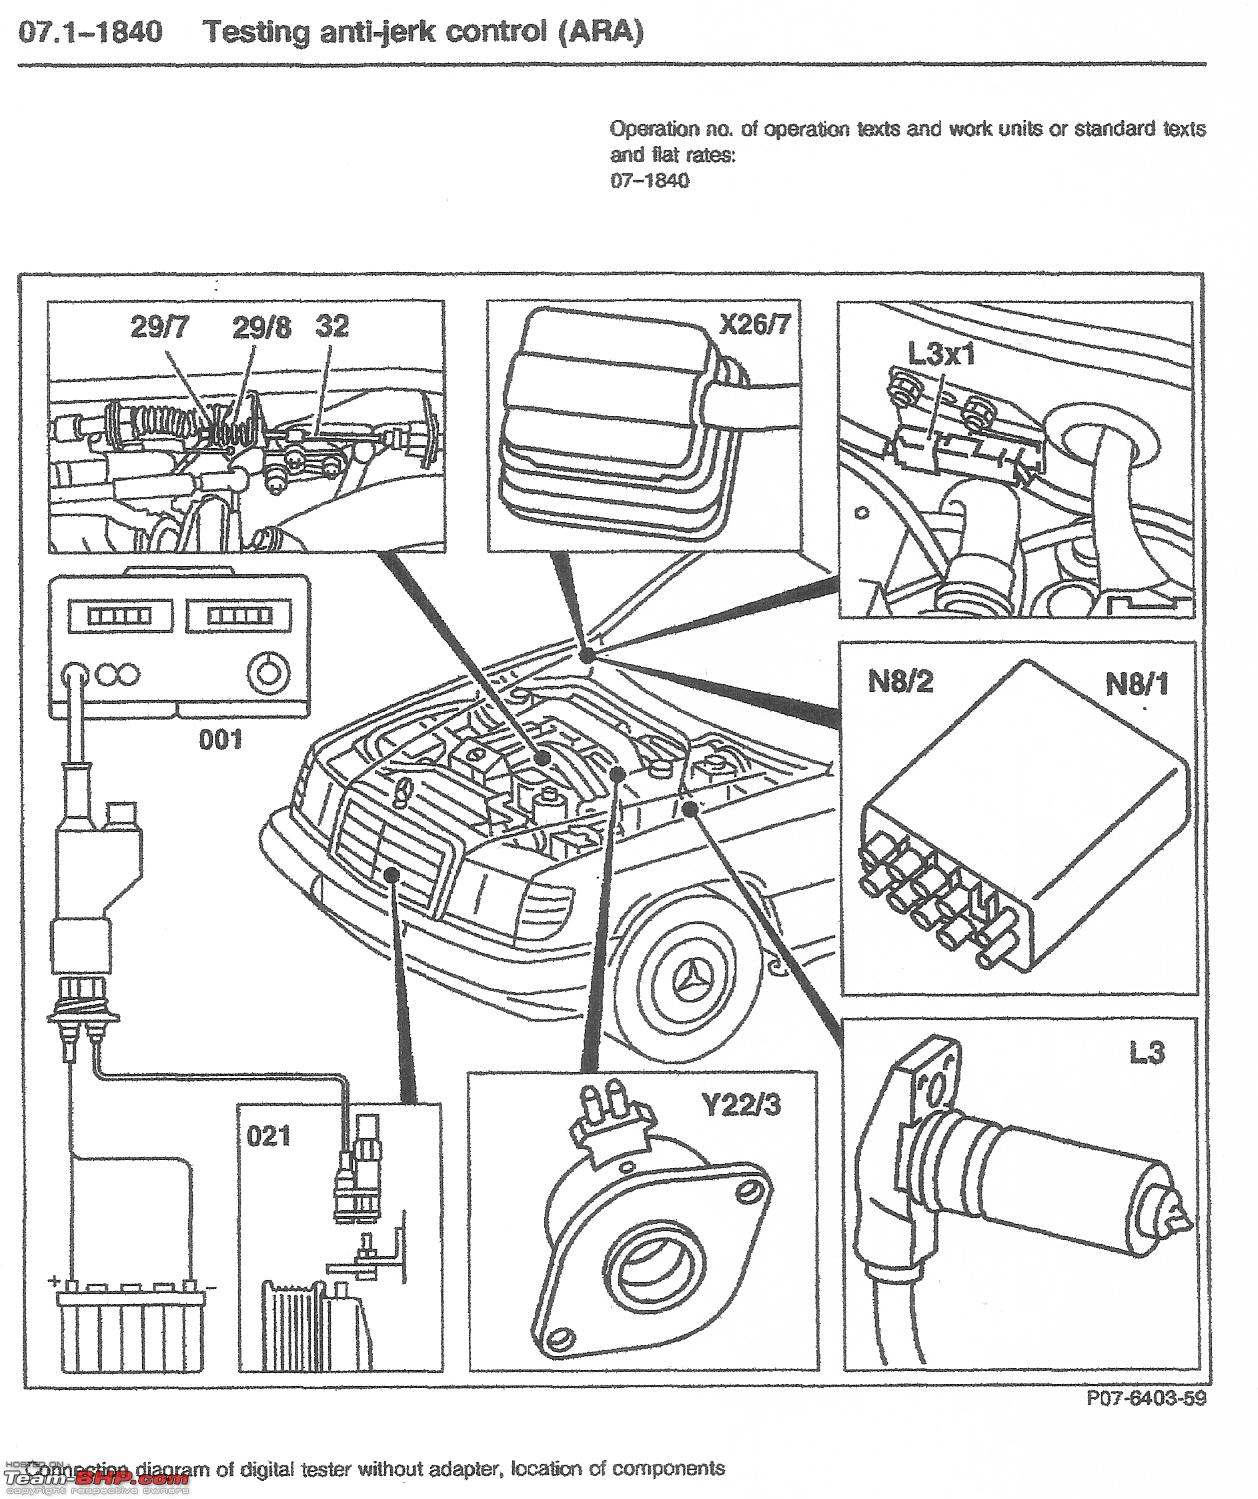 Heatmiser Wiring Centre Diagram furthermore 12 Volt Relay Switch Wiring Diagram Free Picture besides 3897 as well 56563 Mercedes W124 E Class Support Group 45 moreover Volvo Motorola Alternator External Regulator Wiring Diagram. on bosch wiring diagram